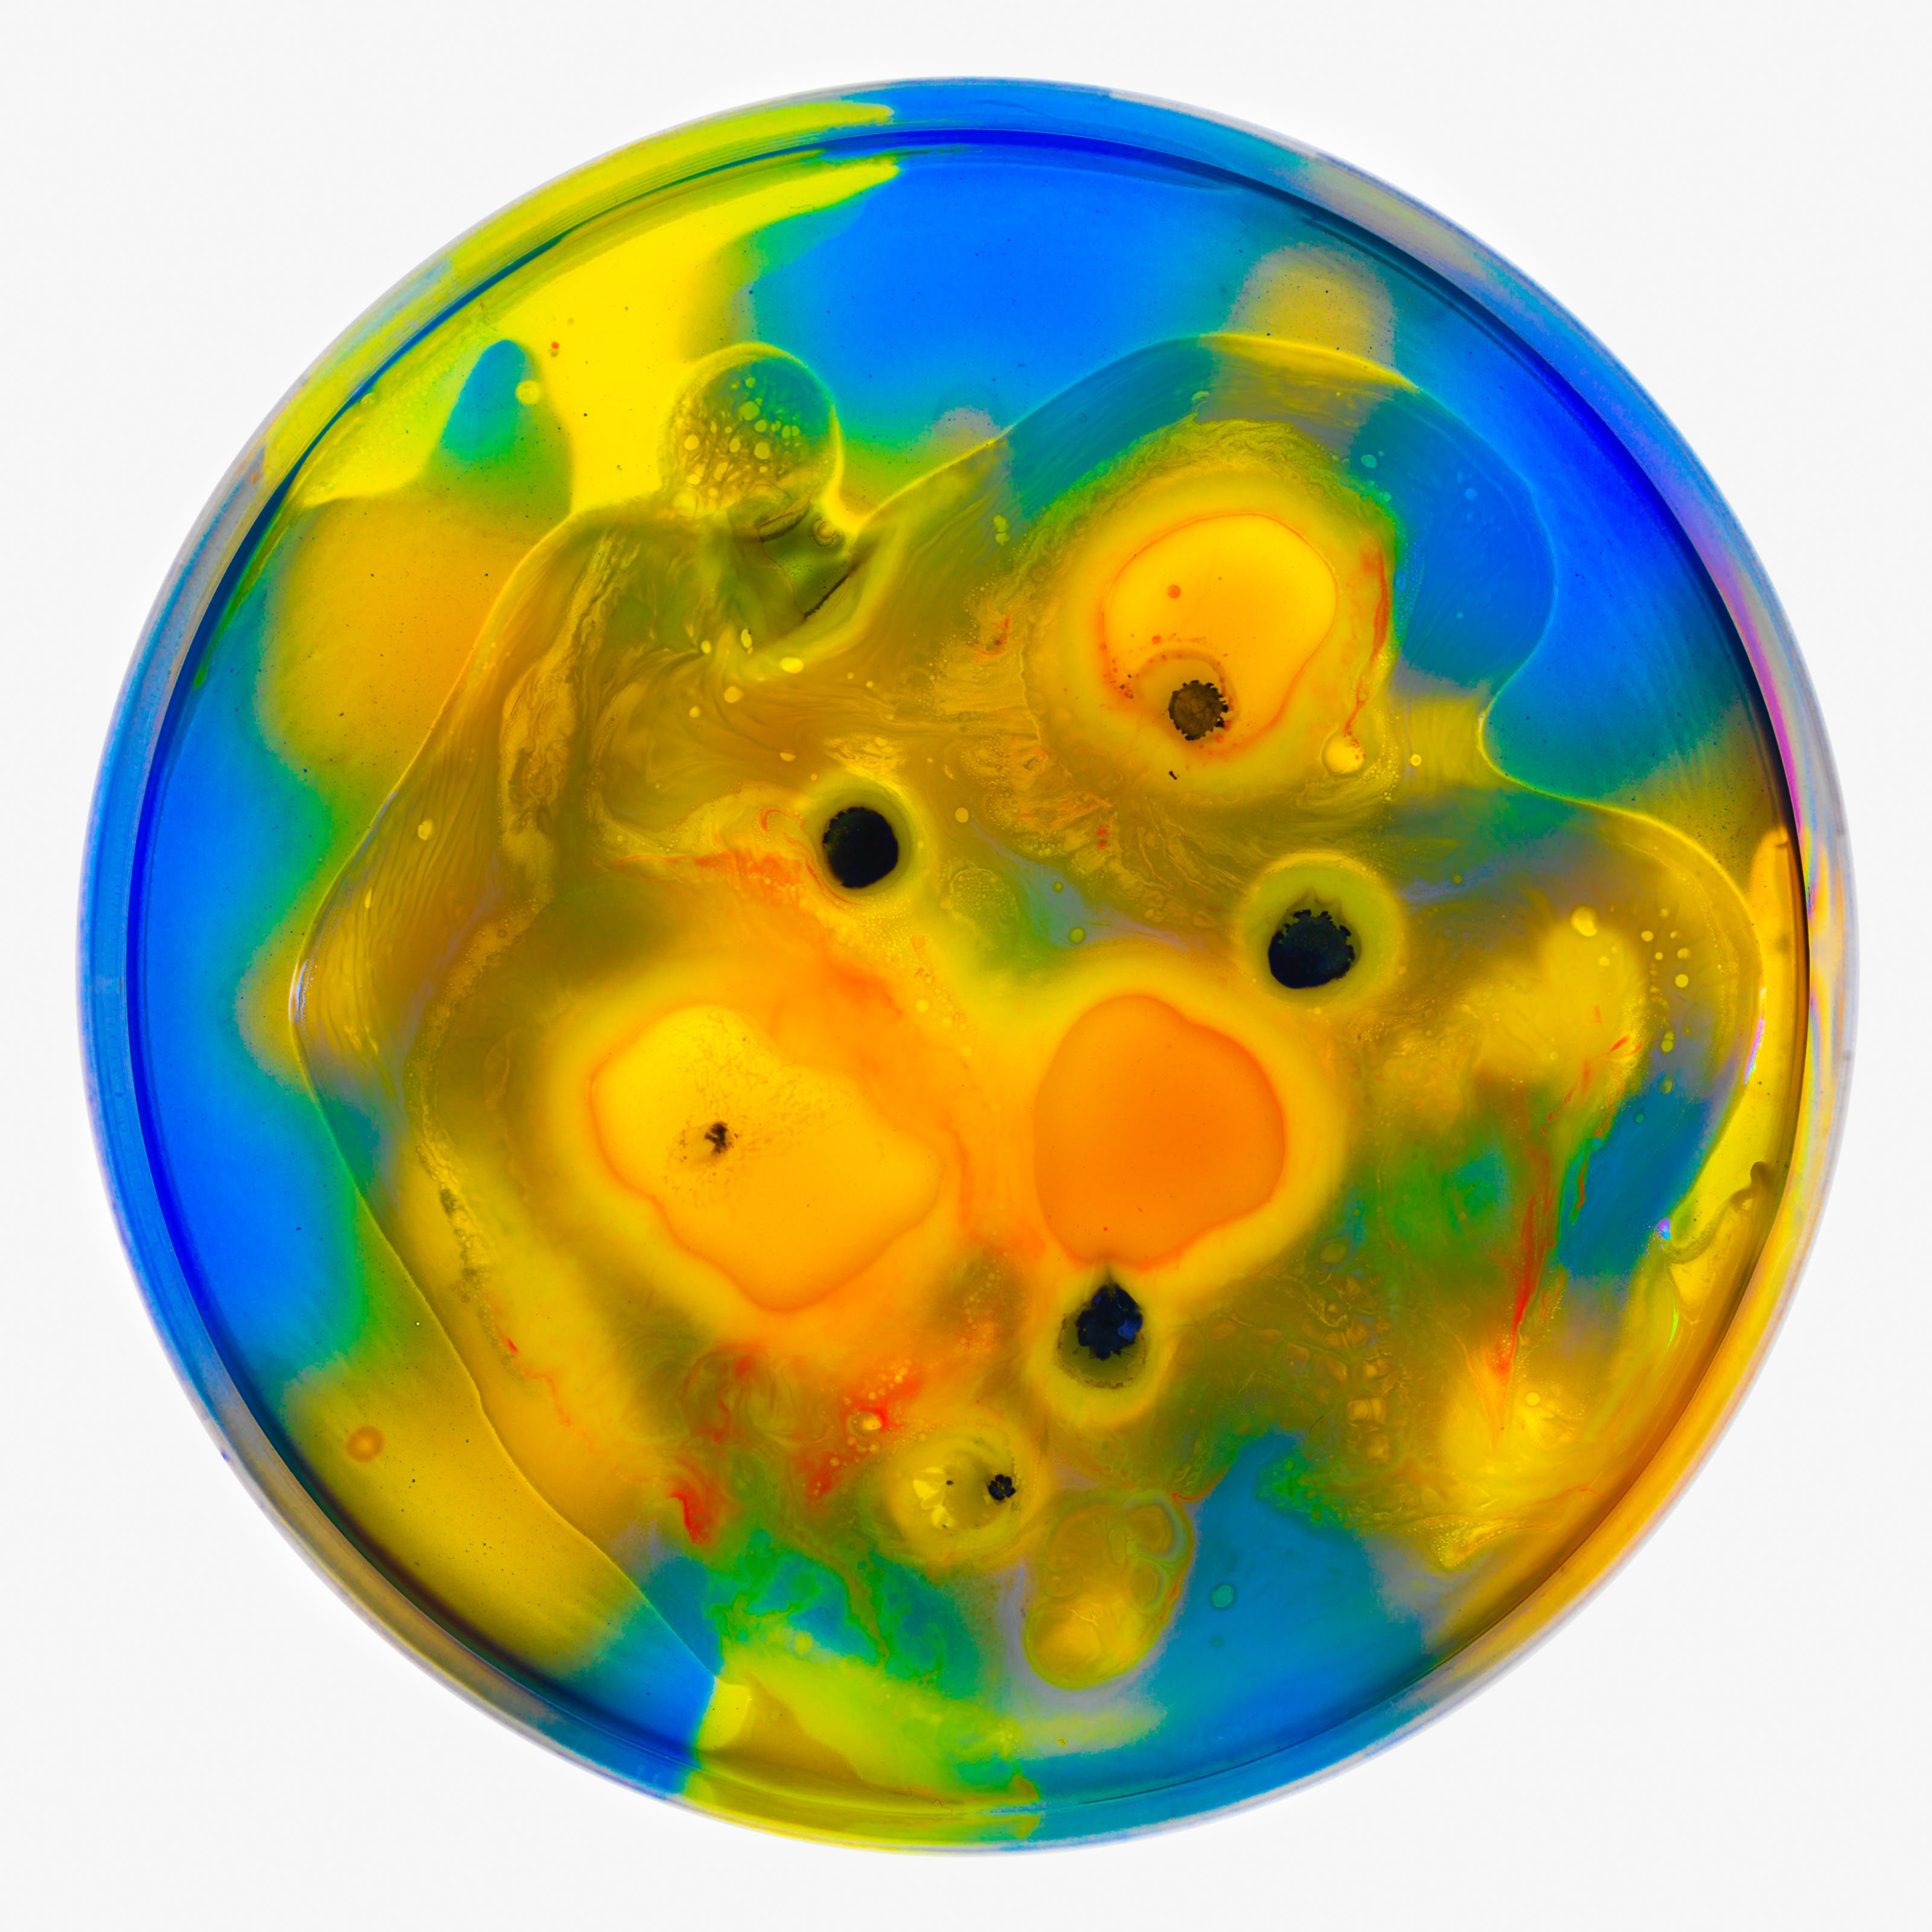 Photograph of a petri dish containing colourful swirls of blue, yellow, orange and black spots, made from ink, watercolour, pva and resin.